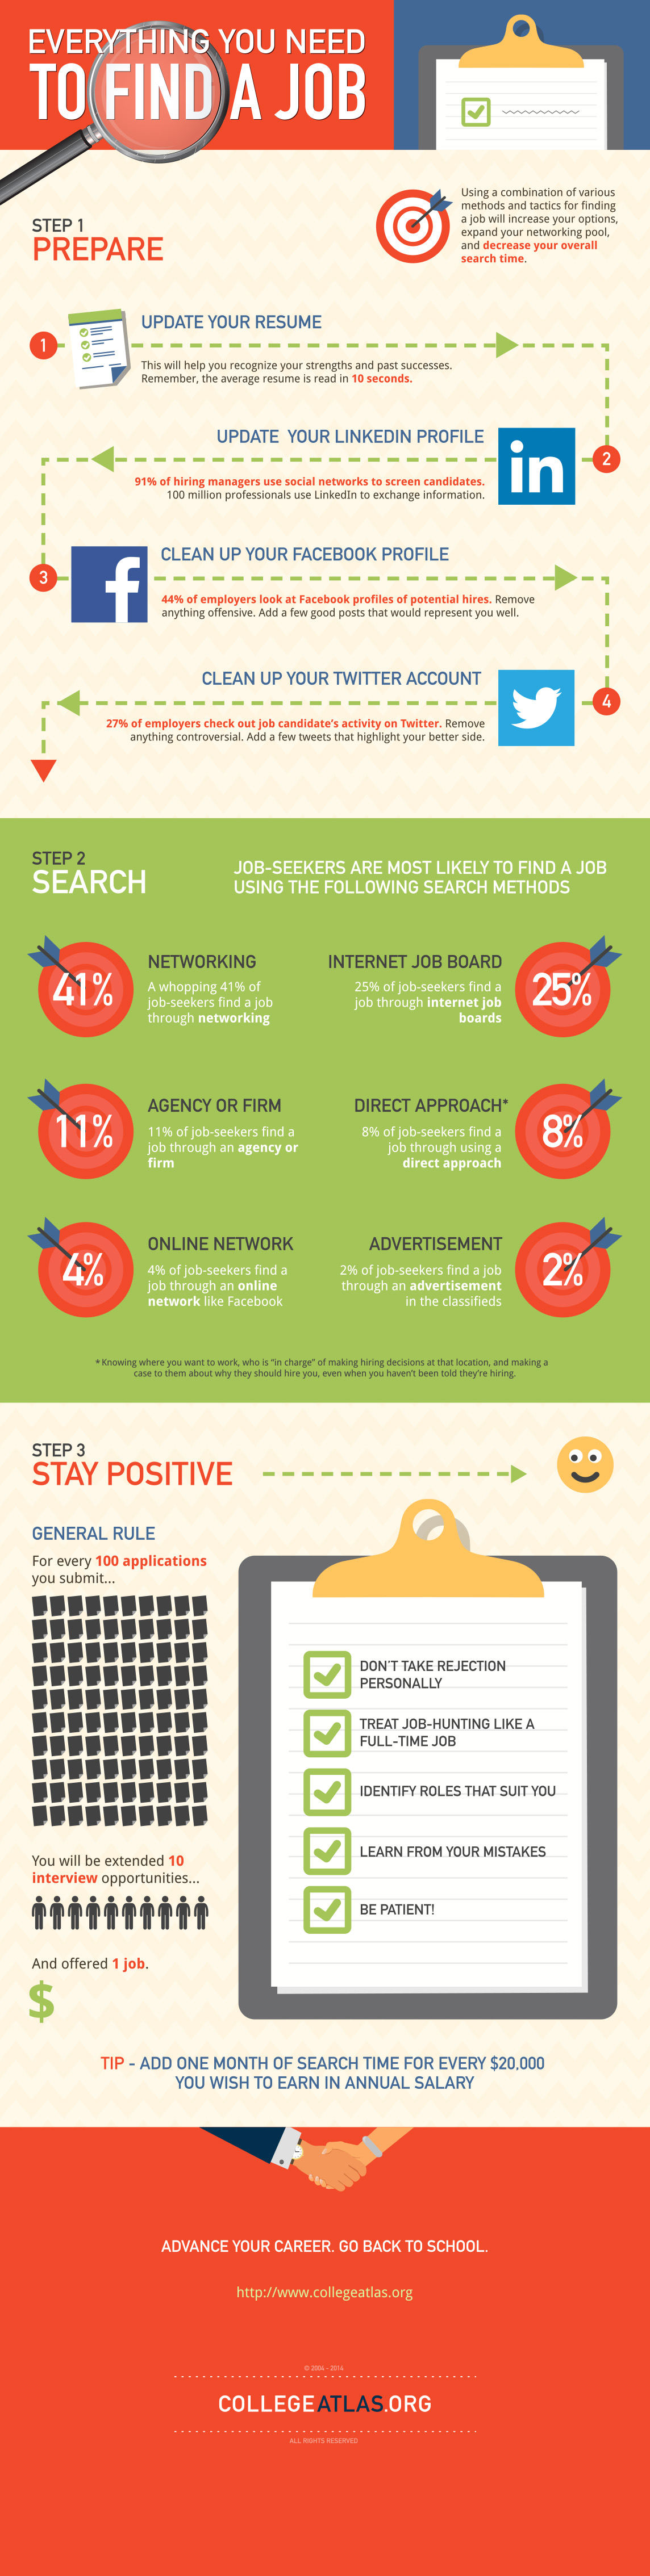 job-search-infographic